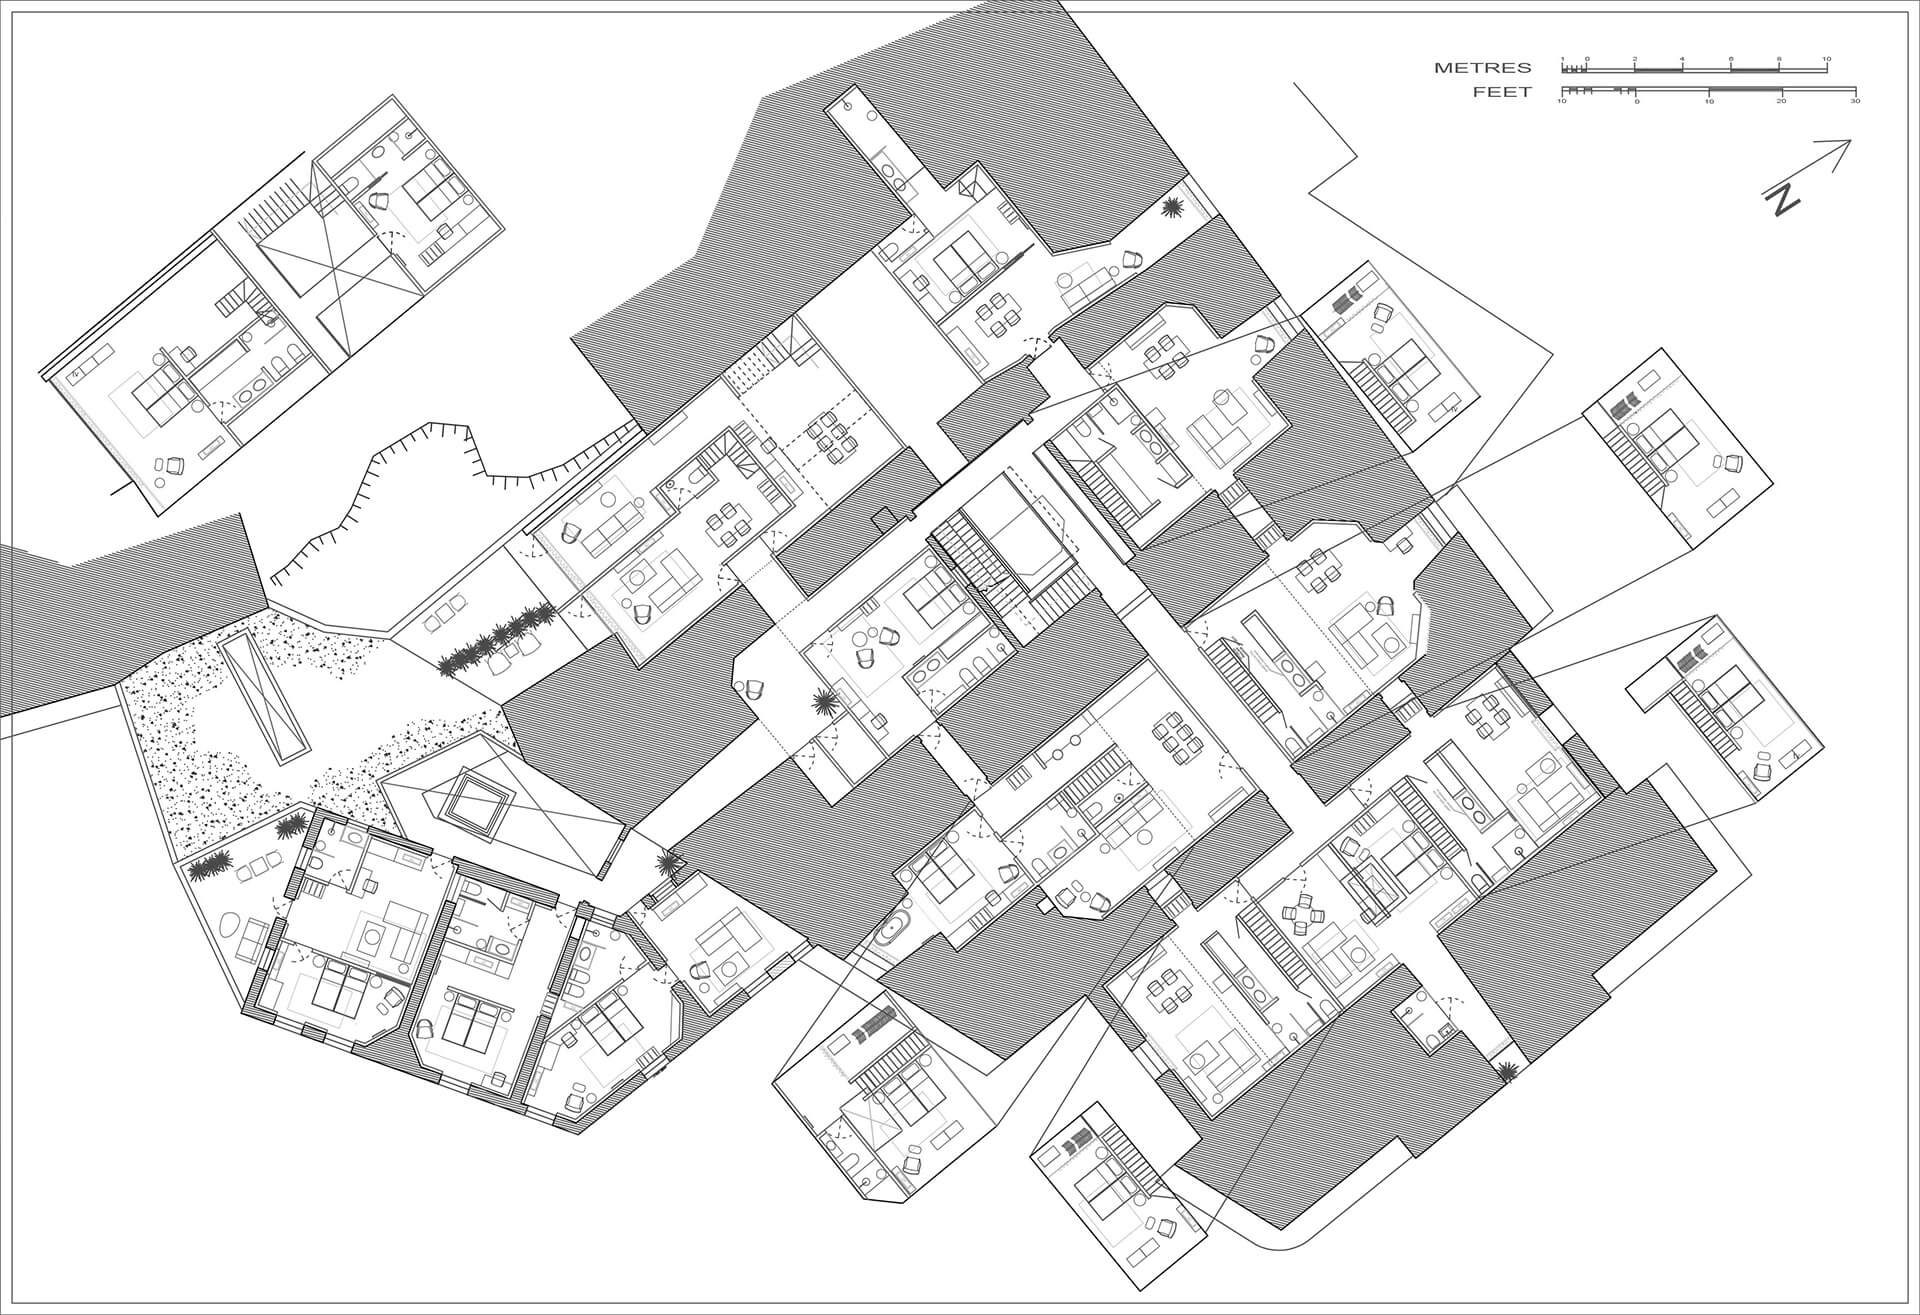 Layout plan | DAAA Haus wins German Design Award 2020 for Cugó Gran Macina Grand Harbour | STIRworld